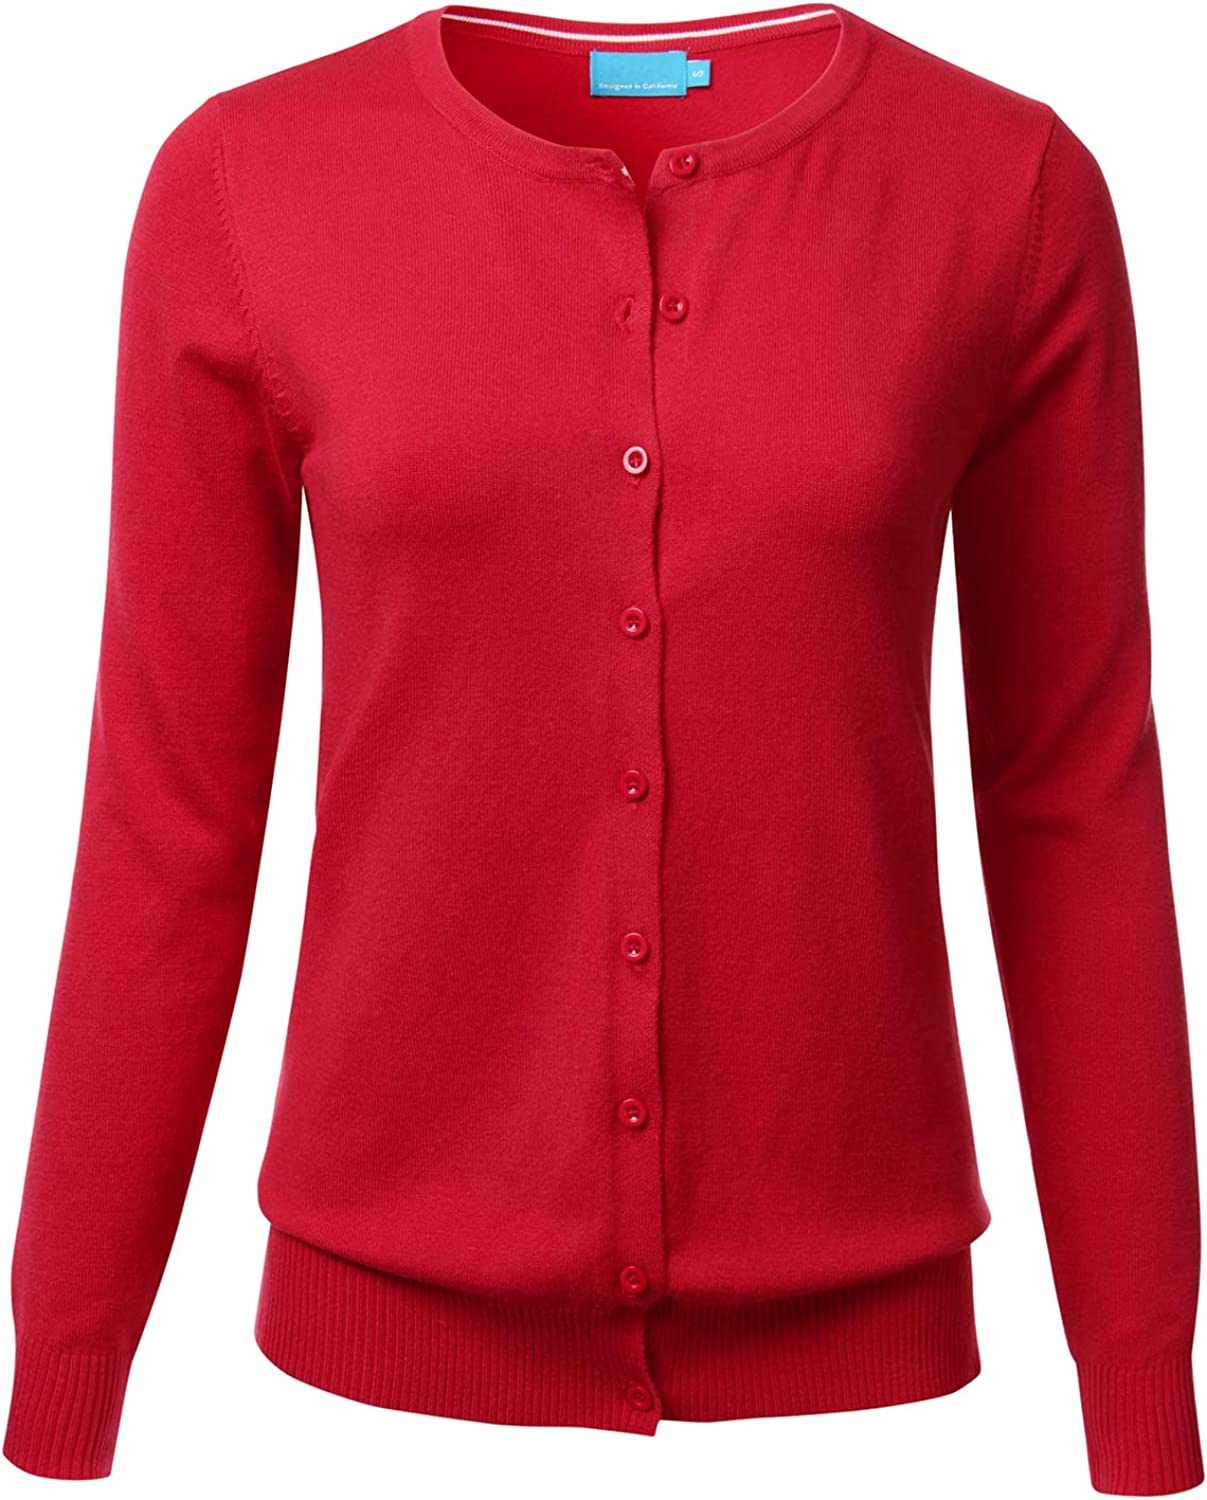 Women's Button Down Crew Neck Long Sleeve Soft Knit Cardigan Sweater RED L